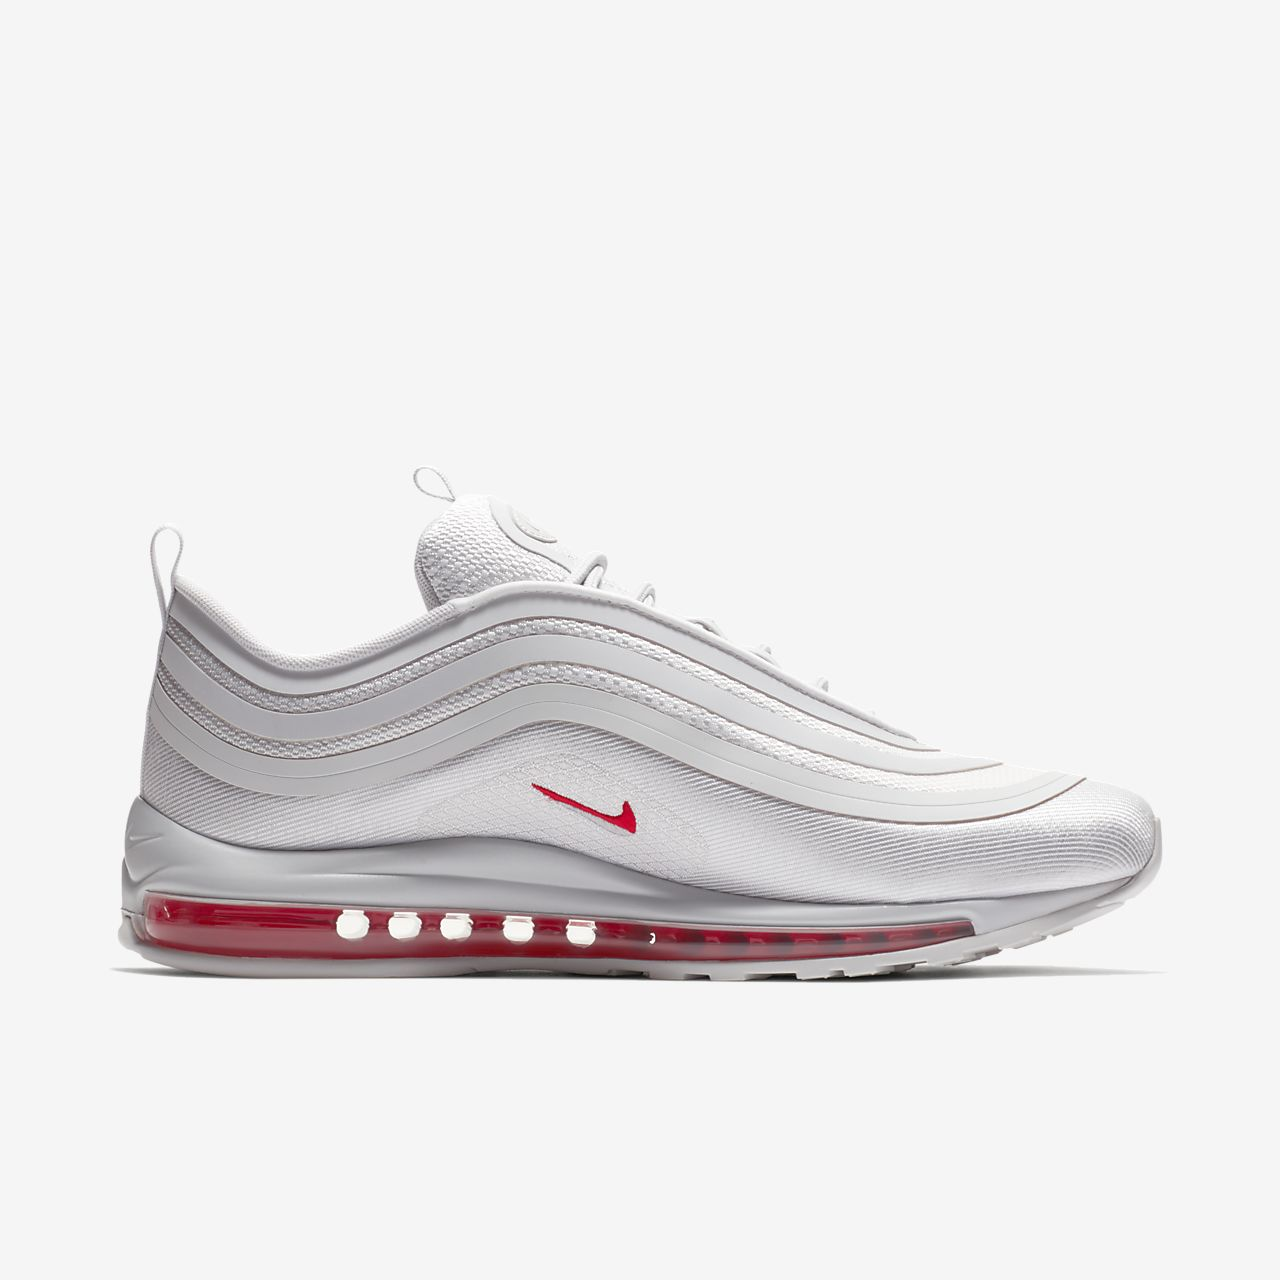 Nike Air Max 97 Fall 2017 Preview